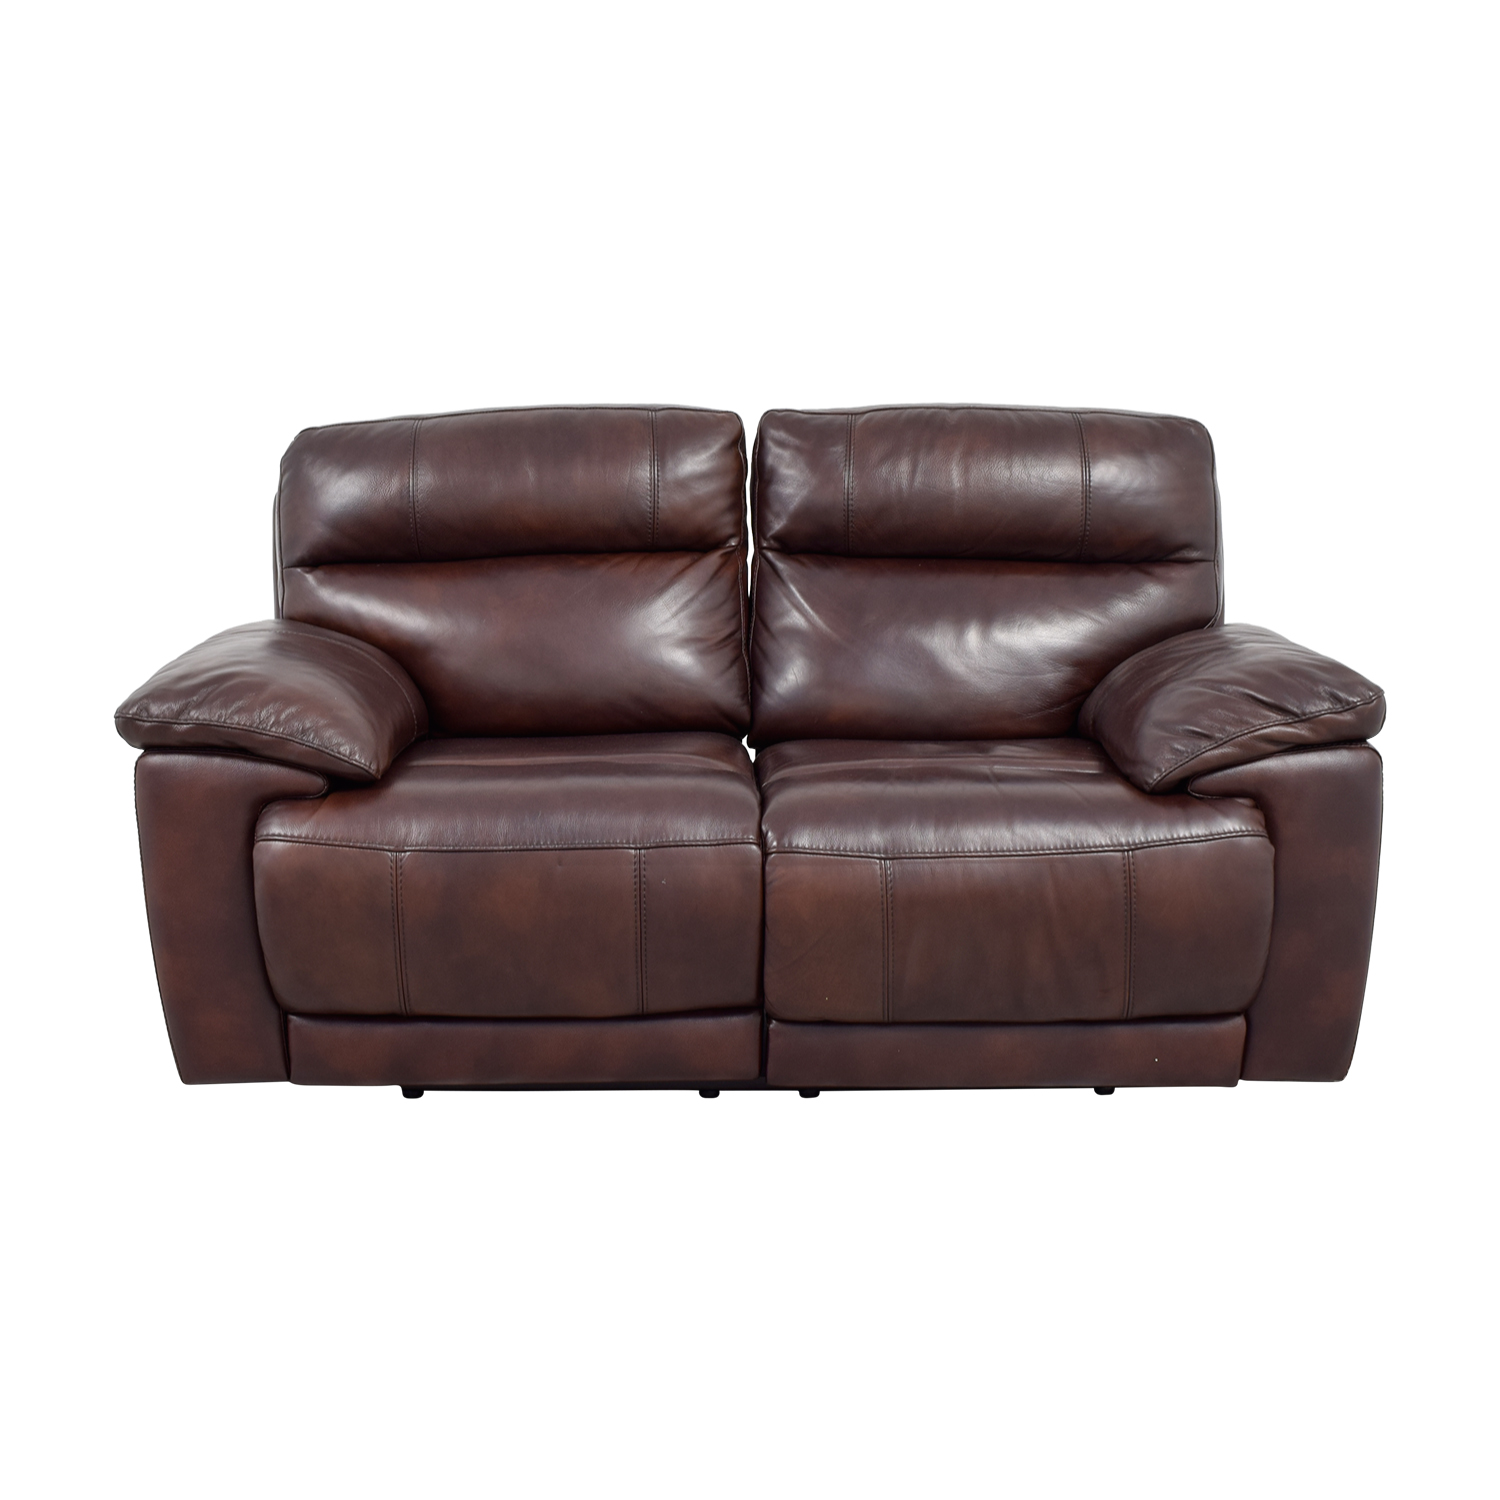 buy Raymour & Flanigan Burgundy Leather Double Reclining Sofa Raymour & Flanigan